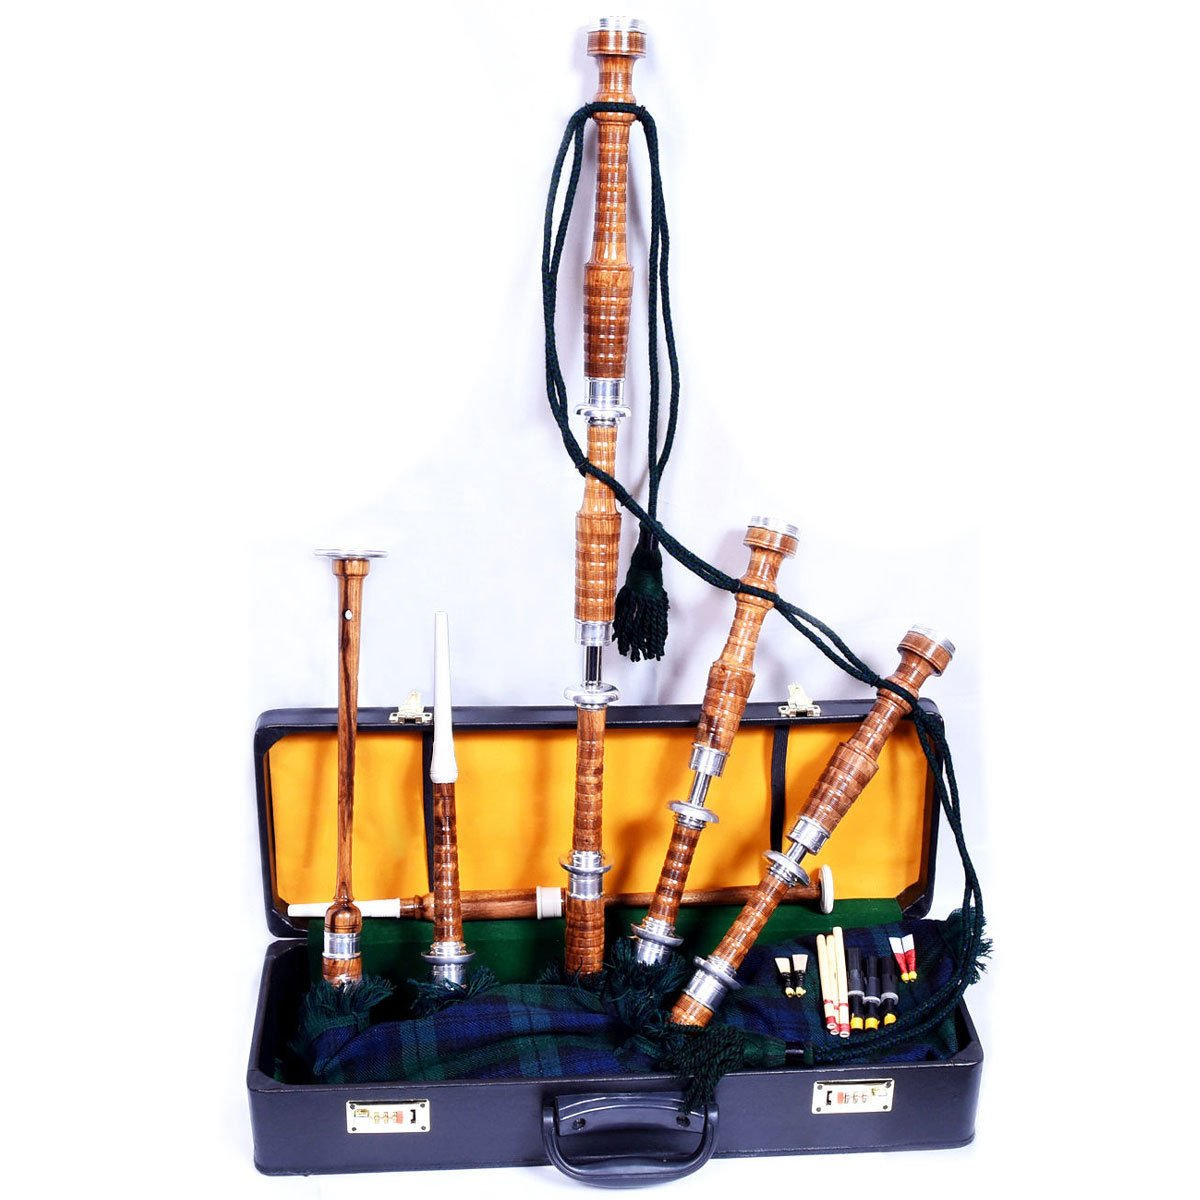 New Highland Rosewood Bagpipe Full Silver Mounts Free Carrying case & Tutor Book US Products